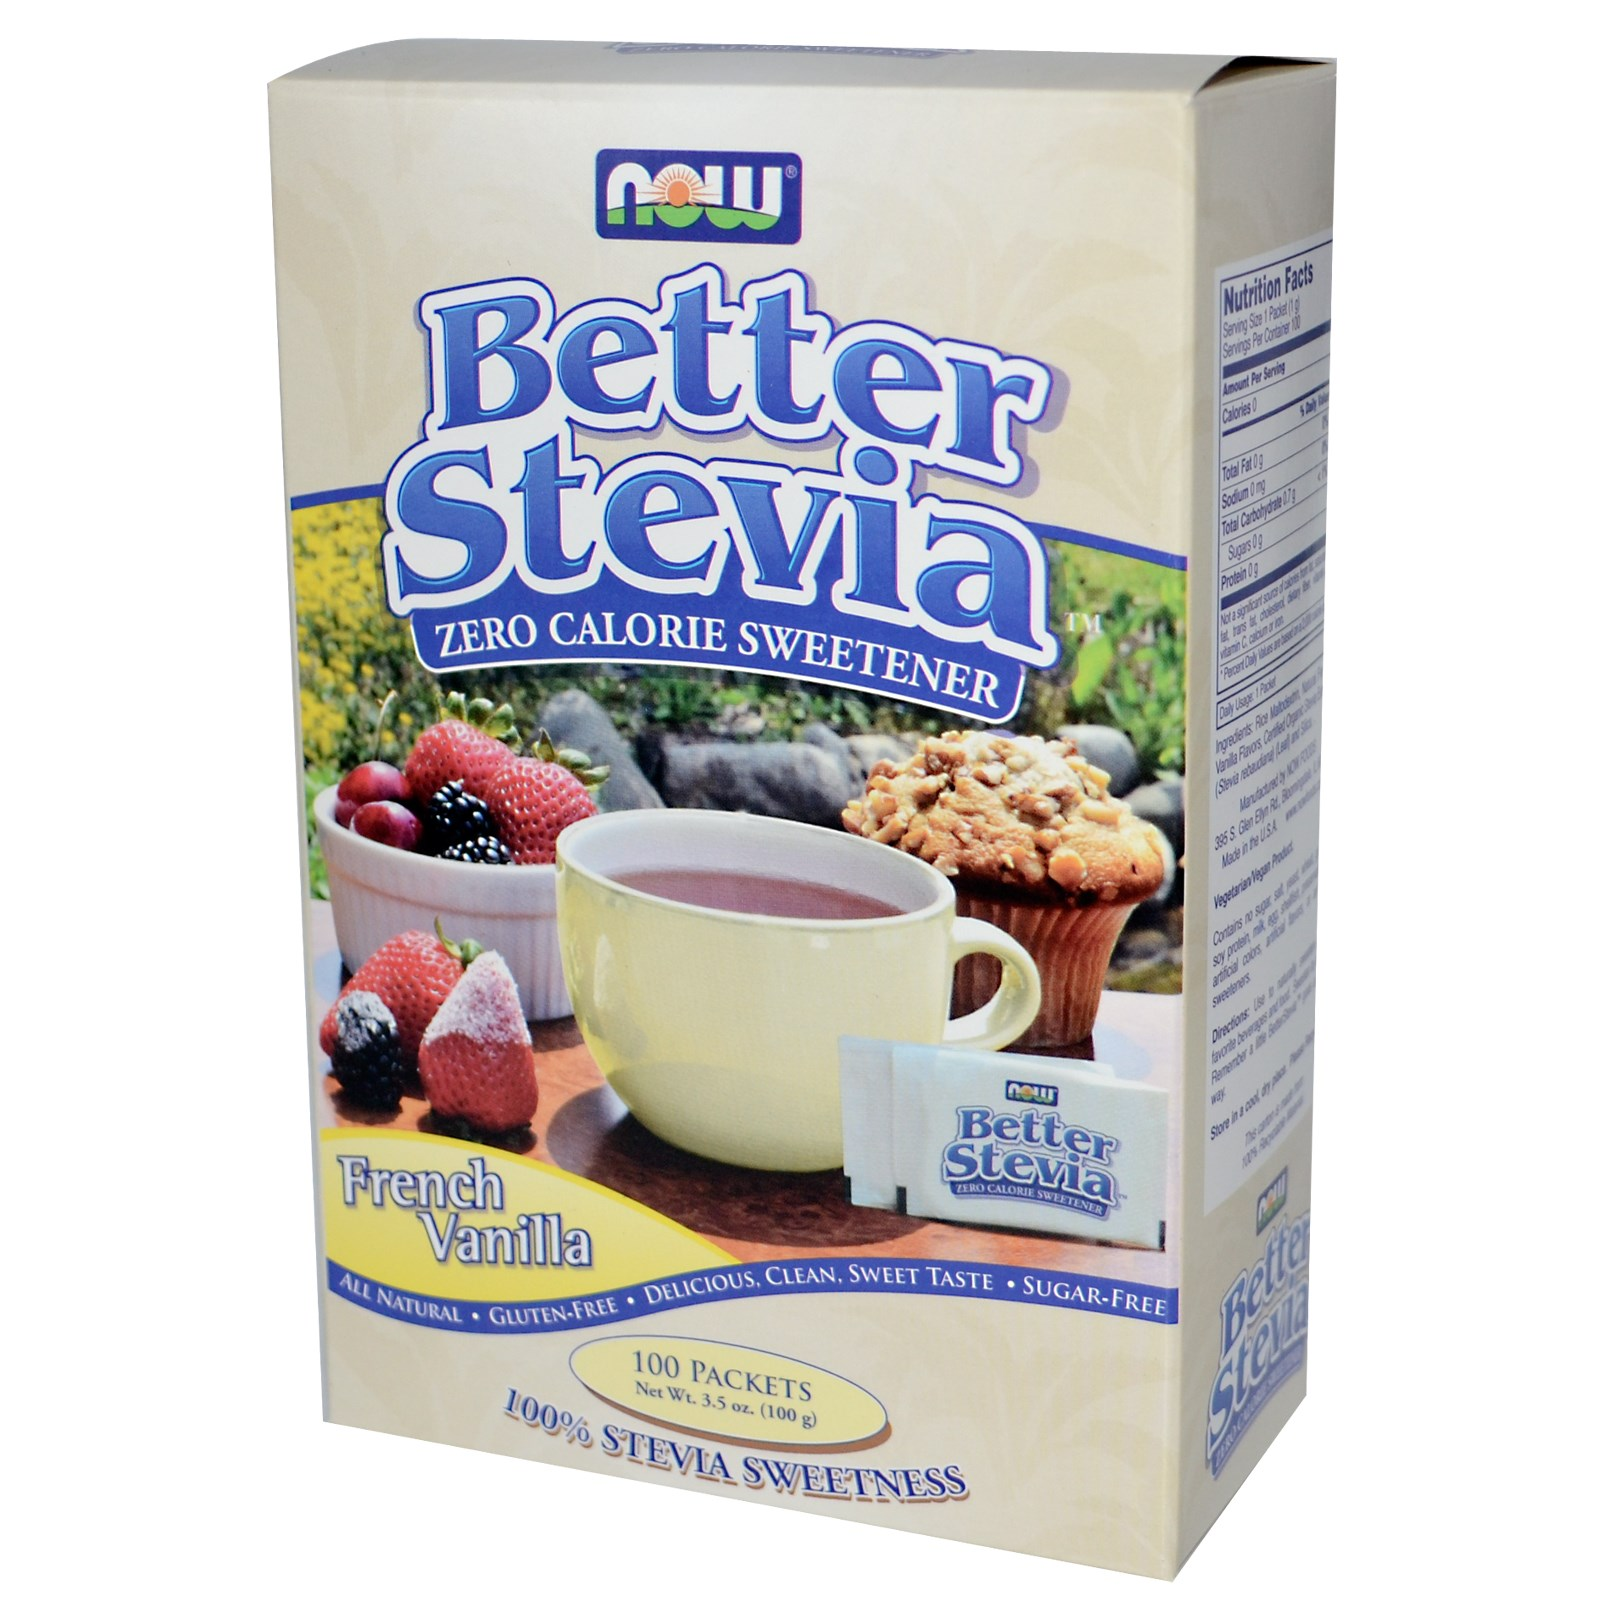 NOW Better Stevia - Zero Calorie Sweetener French Vanilla 75 Packts